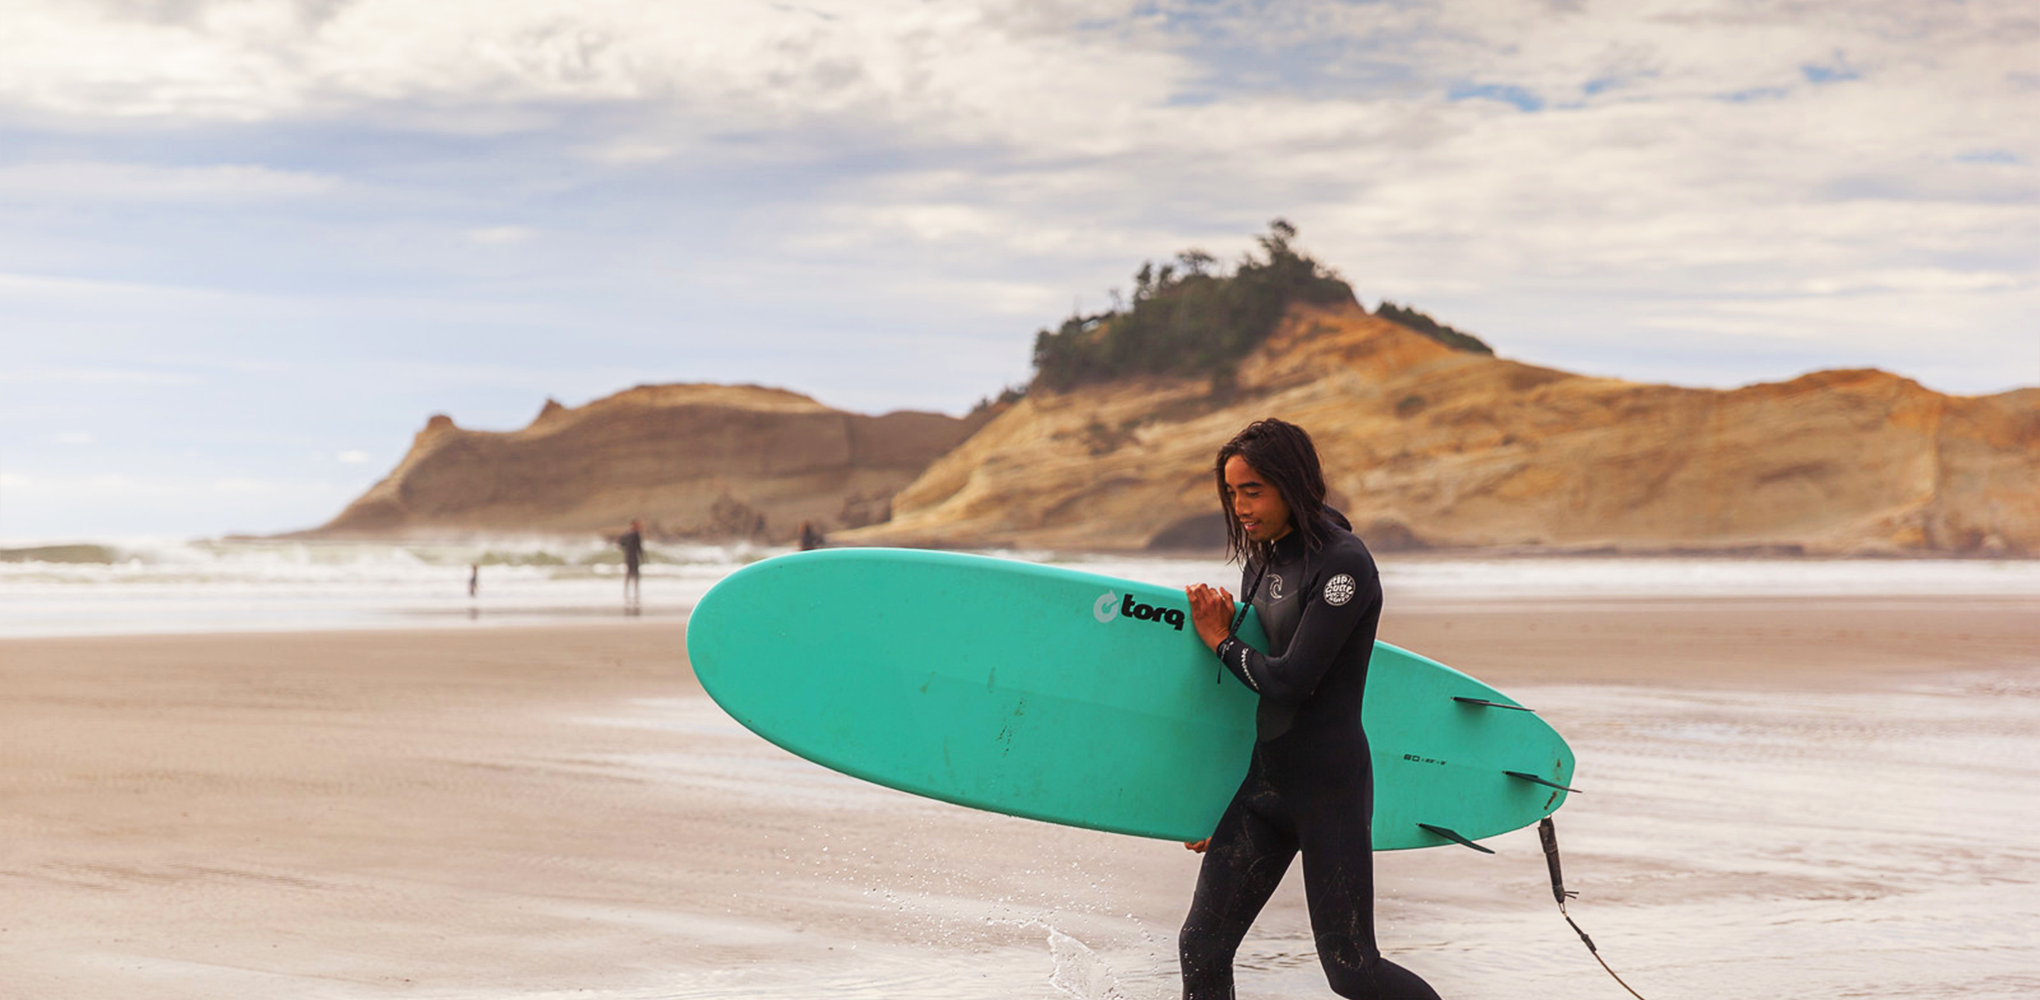 Surfing at Cape Kiwanda on the Oregon Coast